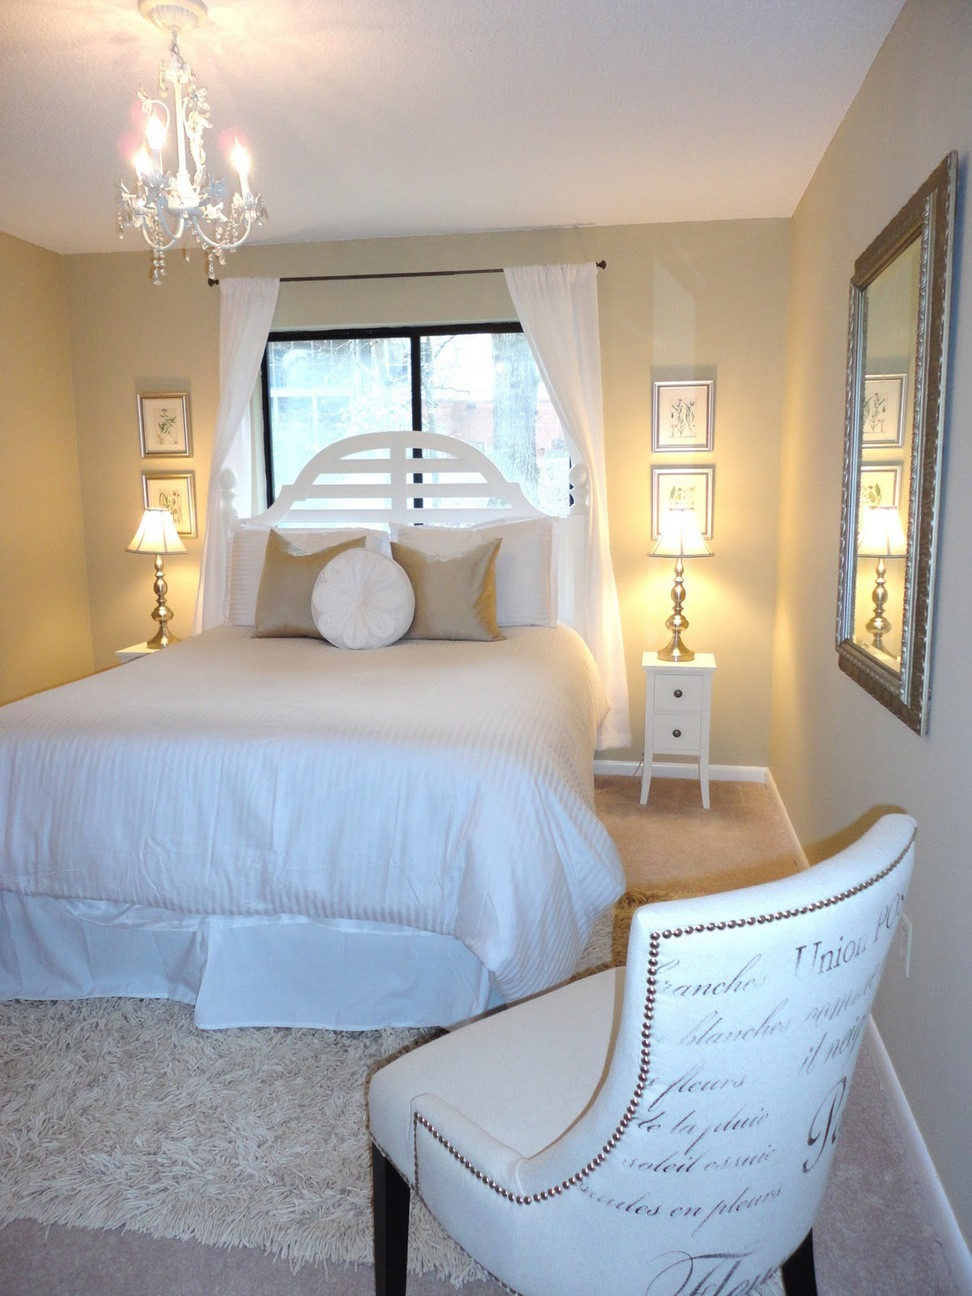 Best ideas about Small Office Guest Room Ideas . Save or Pin Guest room decor ideas really small guest room office Now.